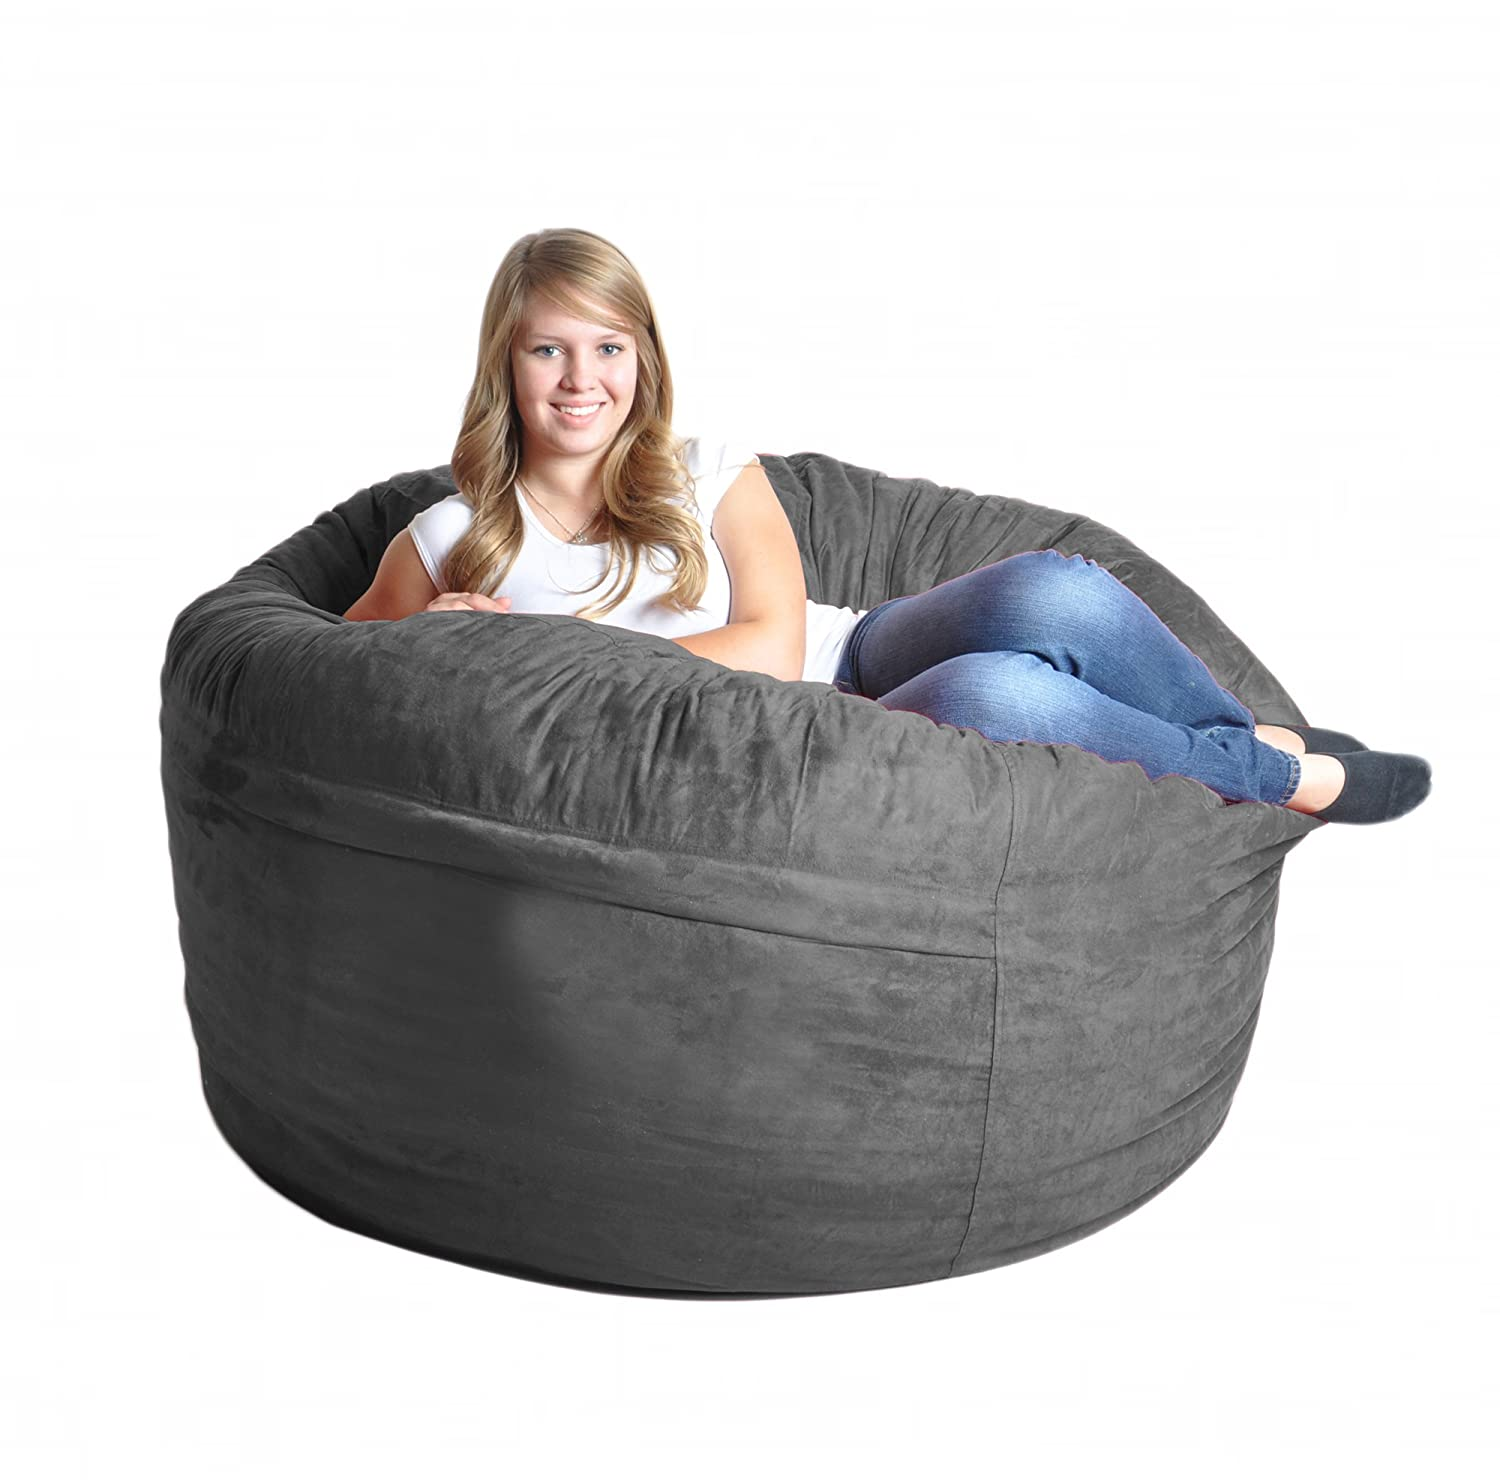 Amazon SLACKER Sack 5 Feet Foam Microsuede Beanbag Chair Large Black Kitchen Dining